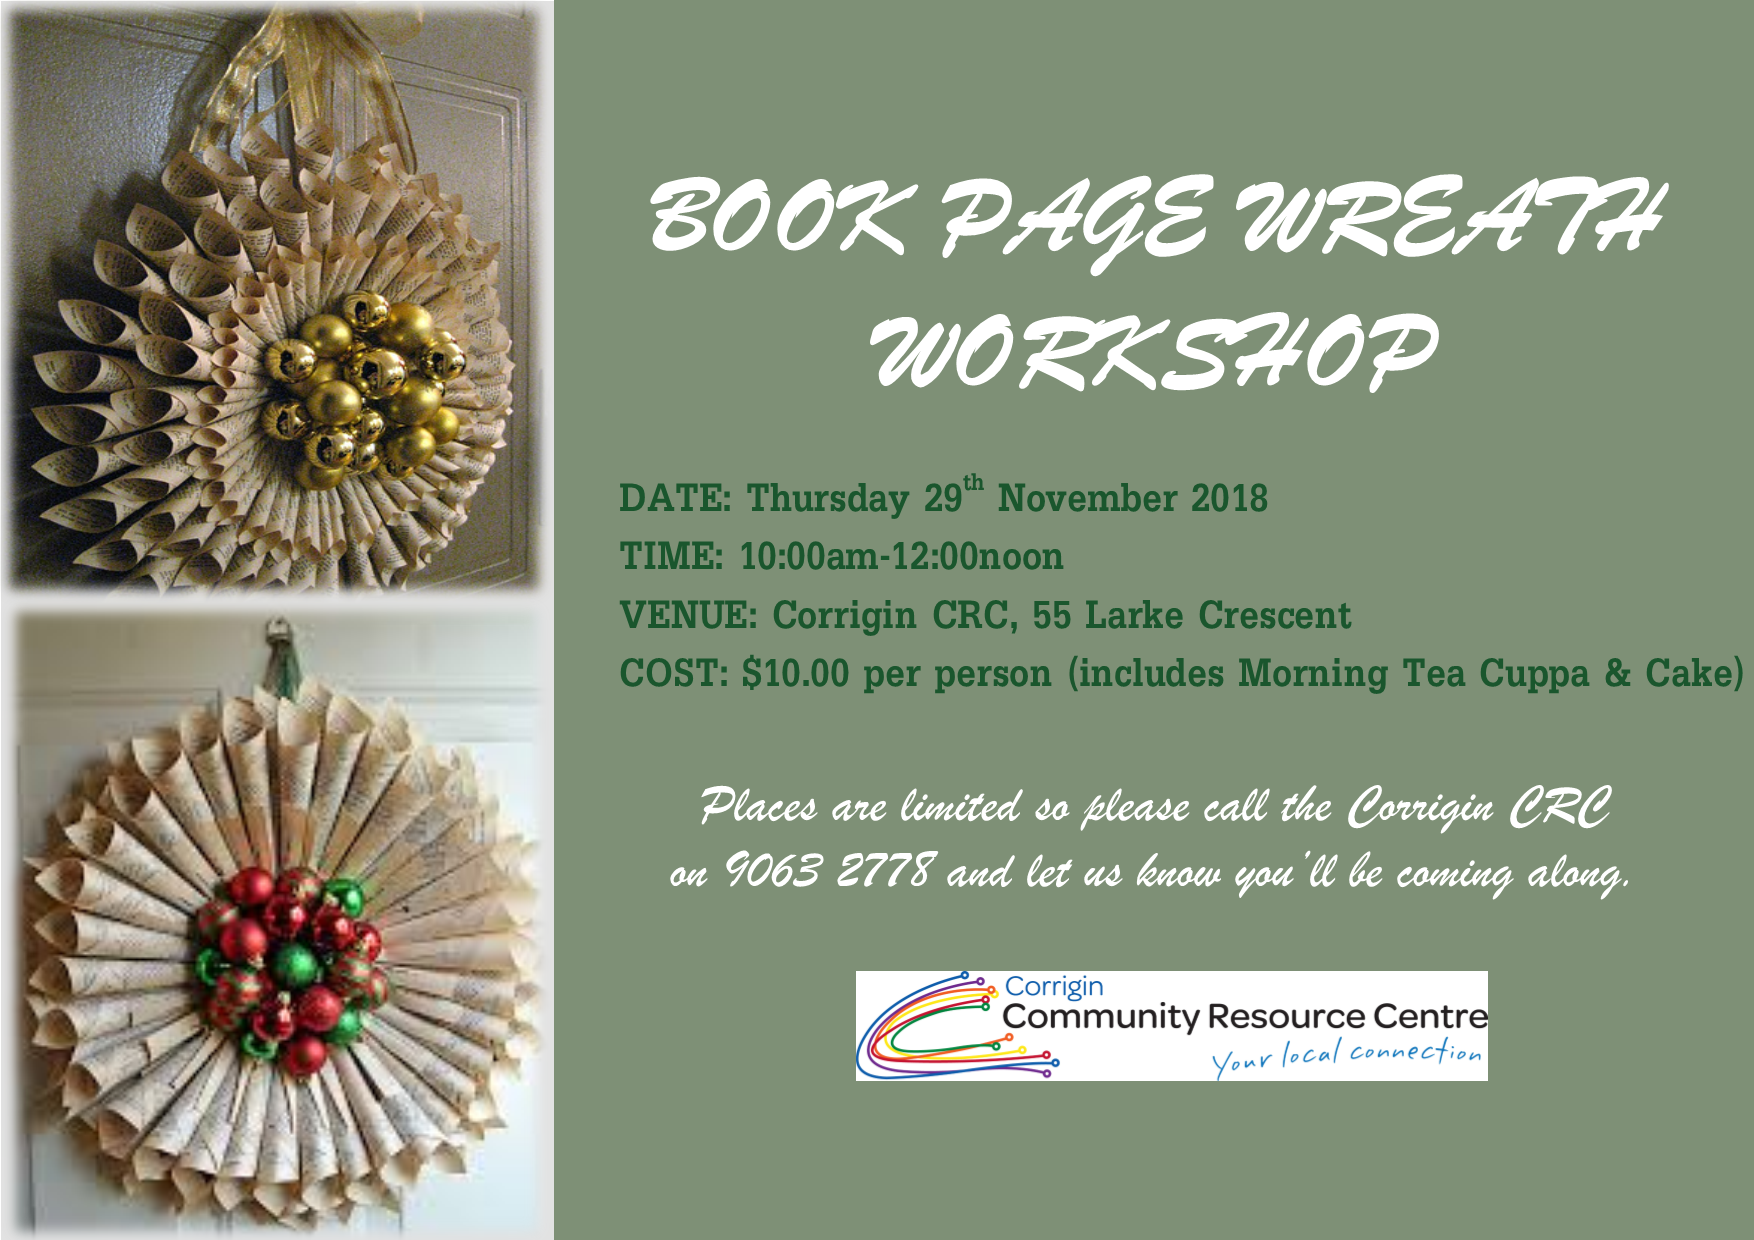 BOOK PAGE CHRISTMAS WREATH WORKSHOP